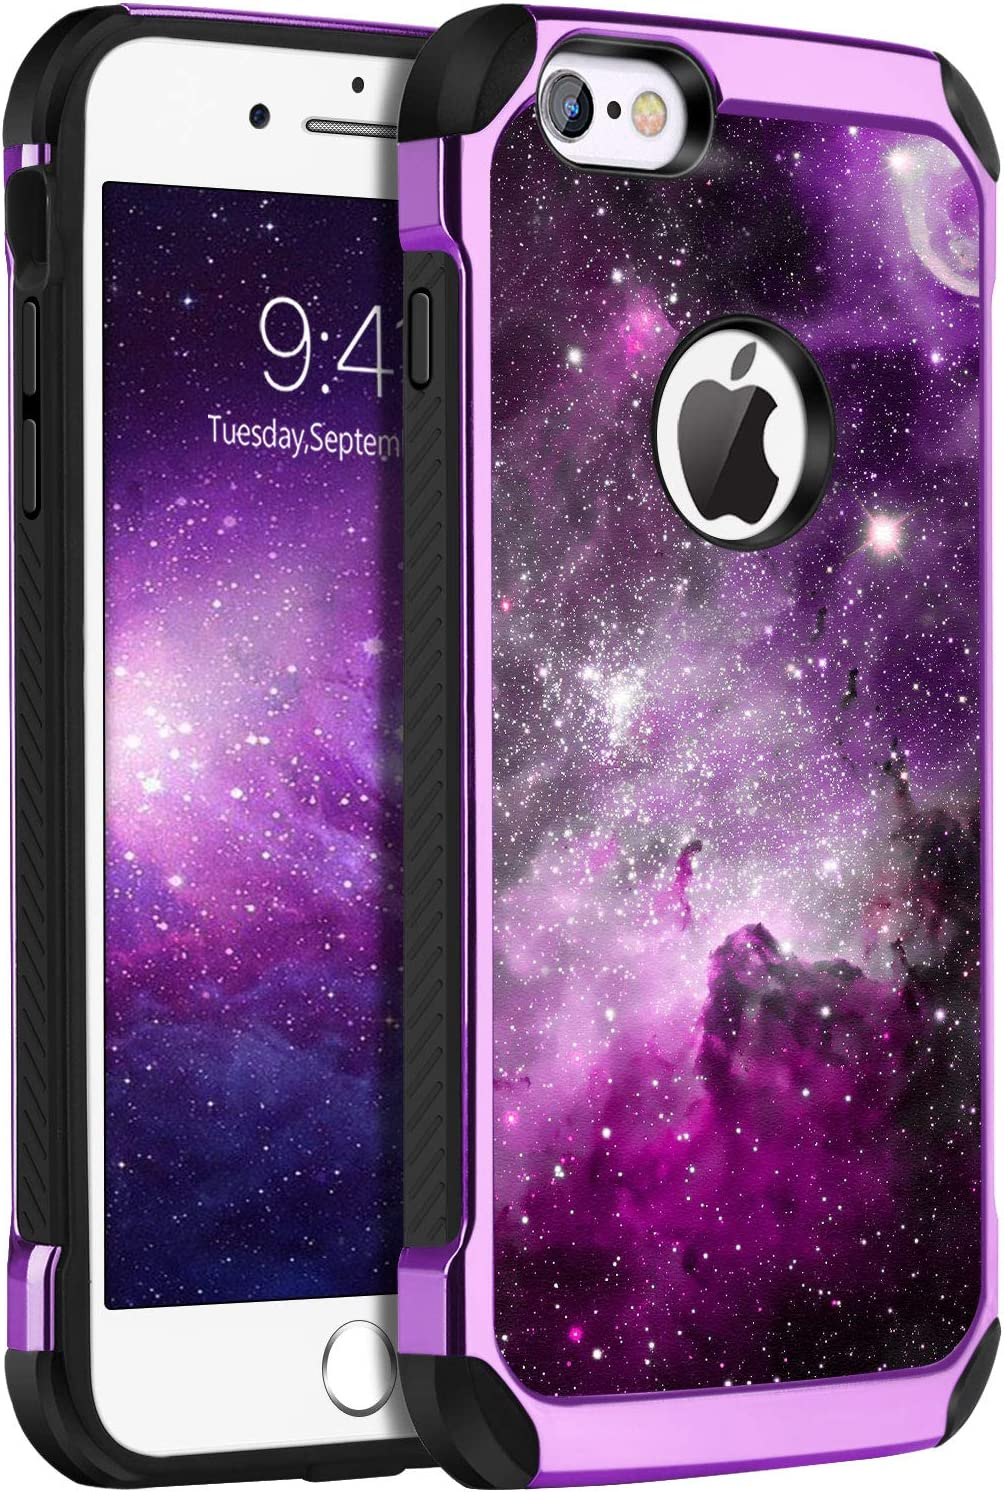 BENTOBEN iPhone 6S Case, iPhone 6 Case, Slim Fit Glow in The Dark 2 in 1 Heavy Duty Rugged Hybrid Soft TPU Bumper Hard PC Shockproof Protective Cases Cover for Apple iPhone 6/6S 4.7